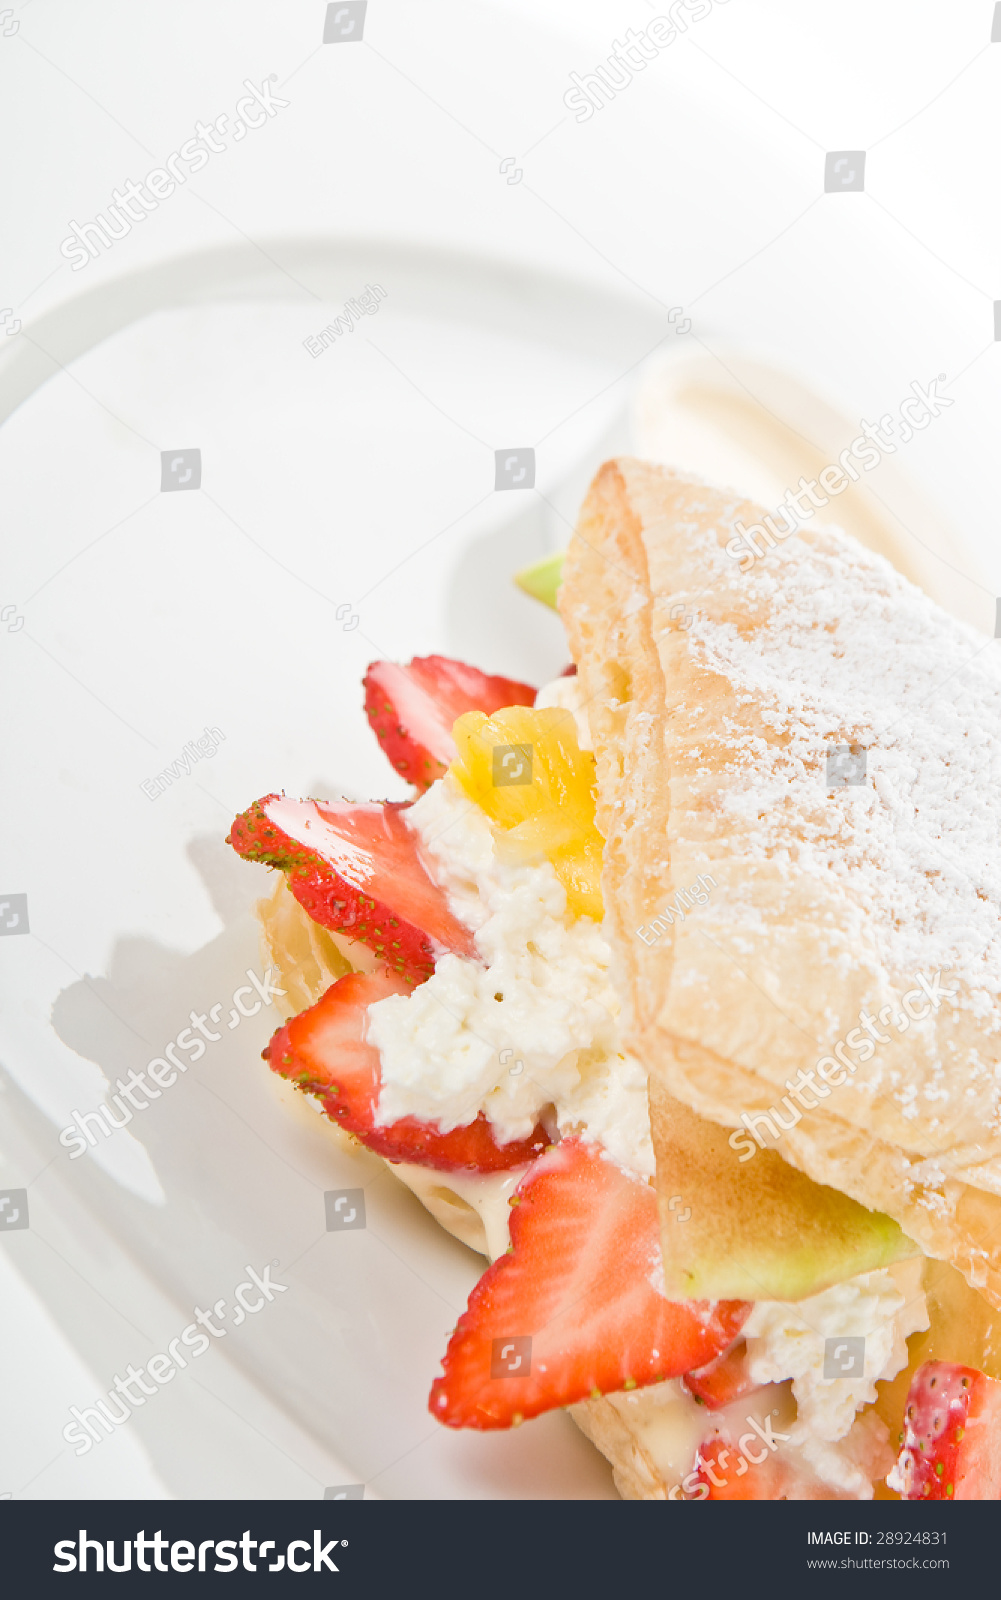 Puff pastry with fresh fruit and cream #28924831